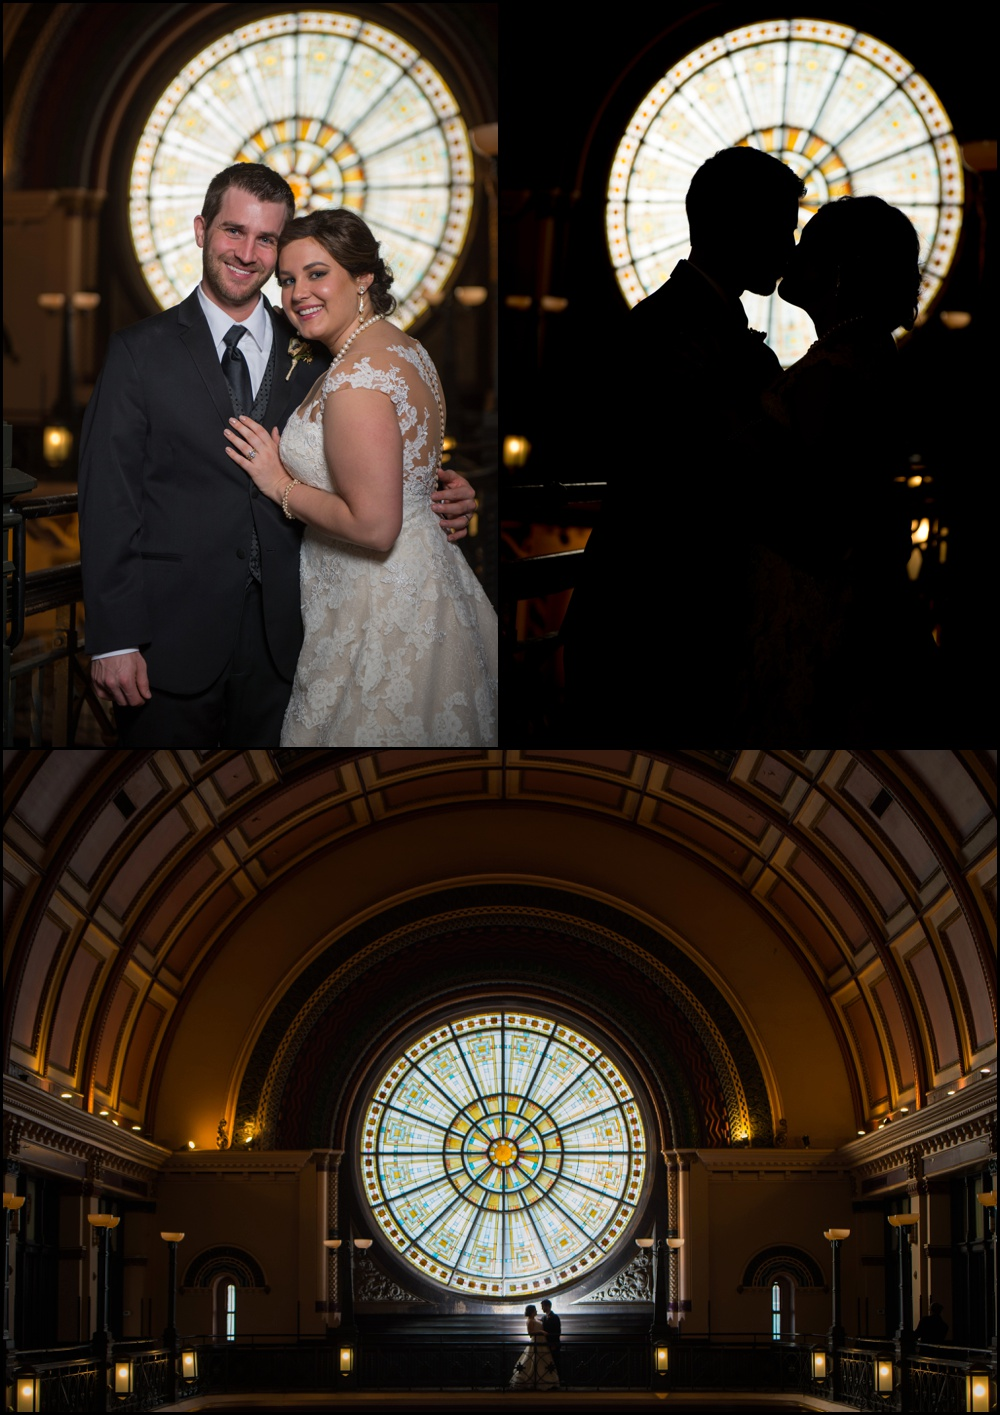 Indianapolis Union Station Wedding Pictures-029.jpg